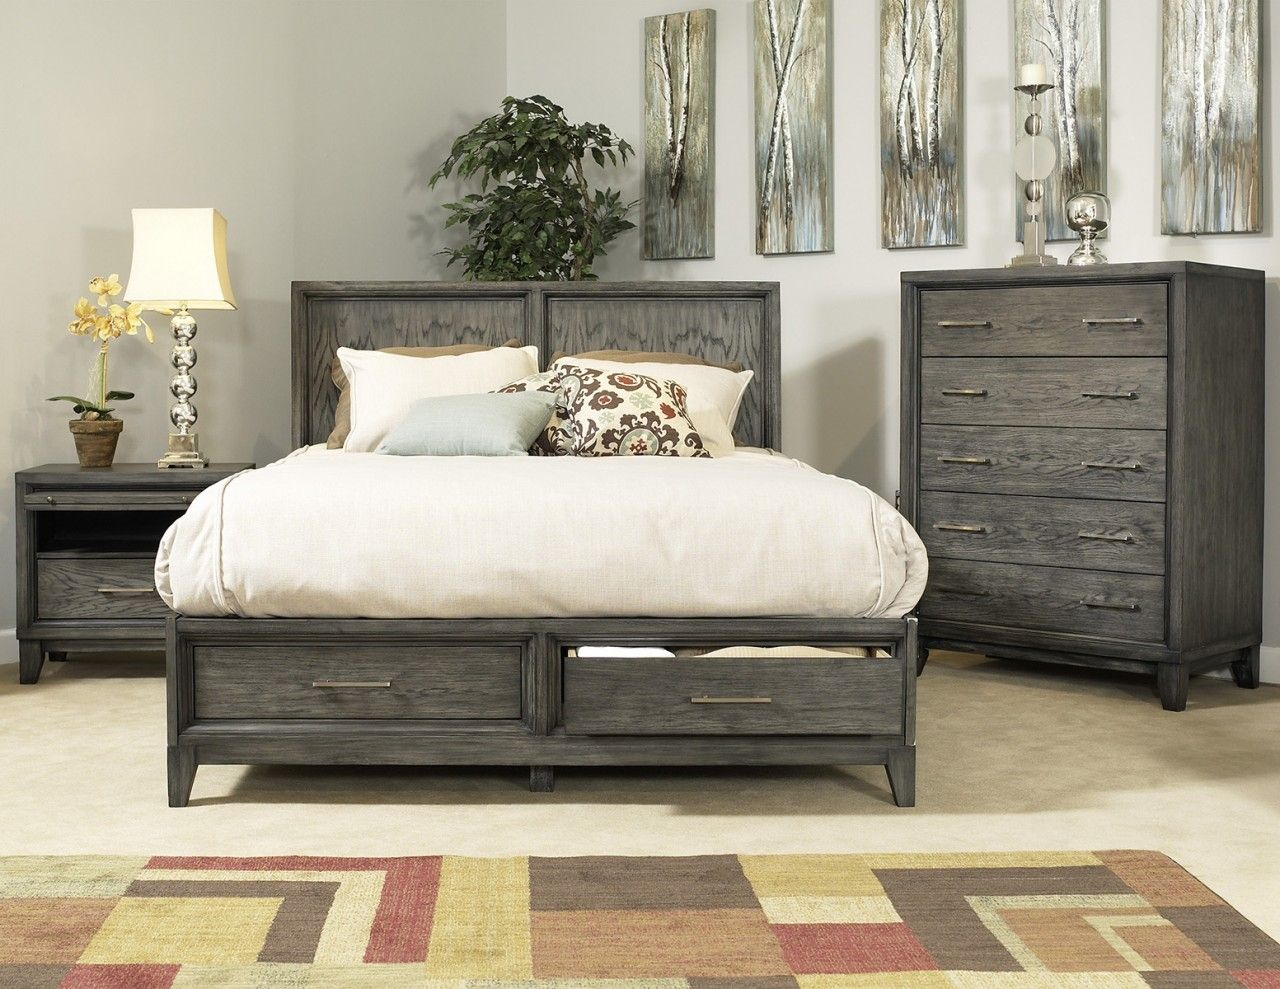 Grey wash oak bedroom furniture bedroom furniture pinterest